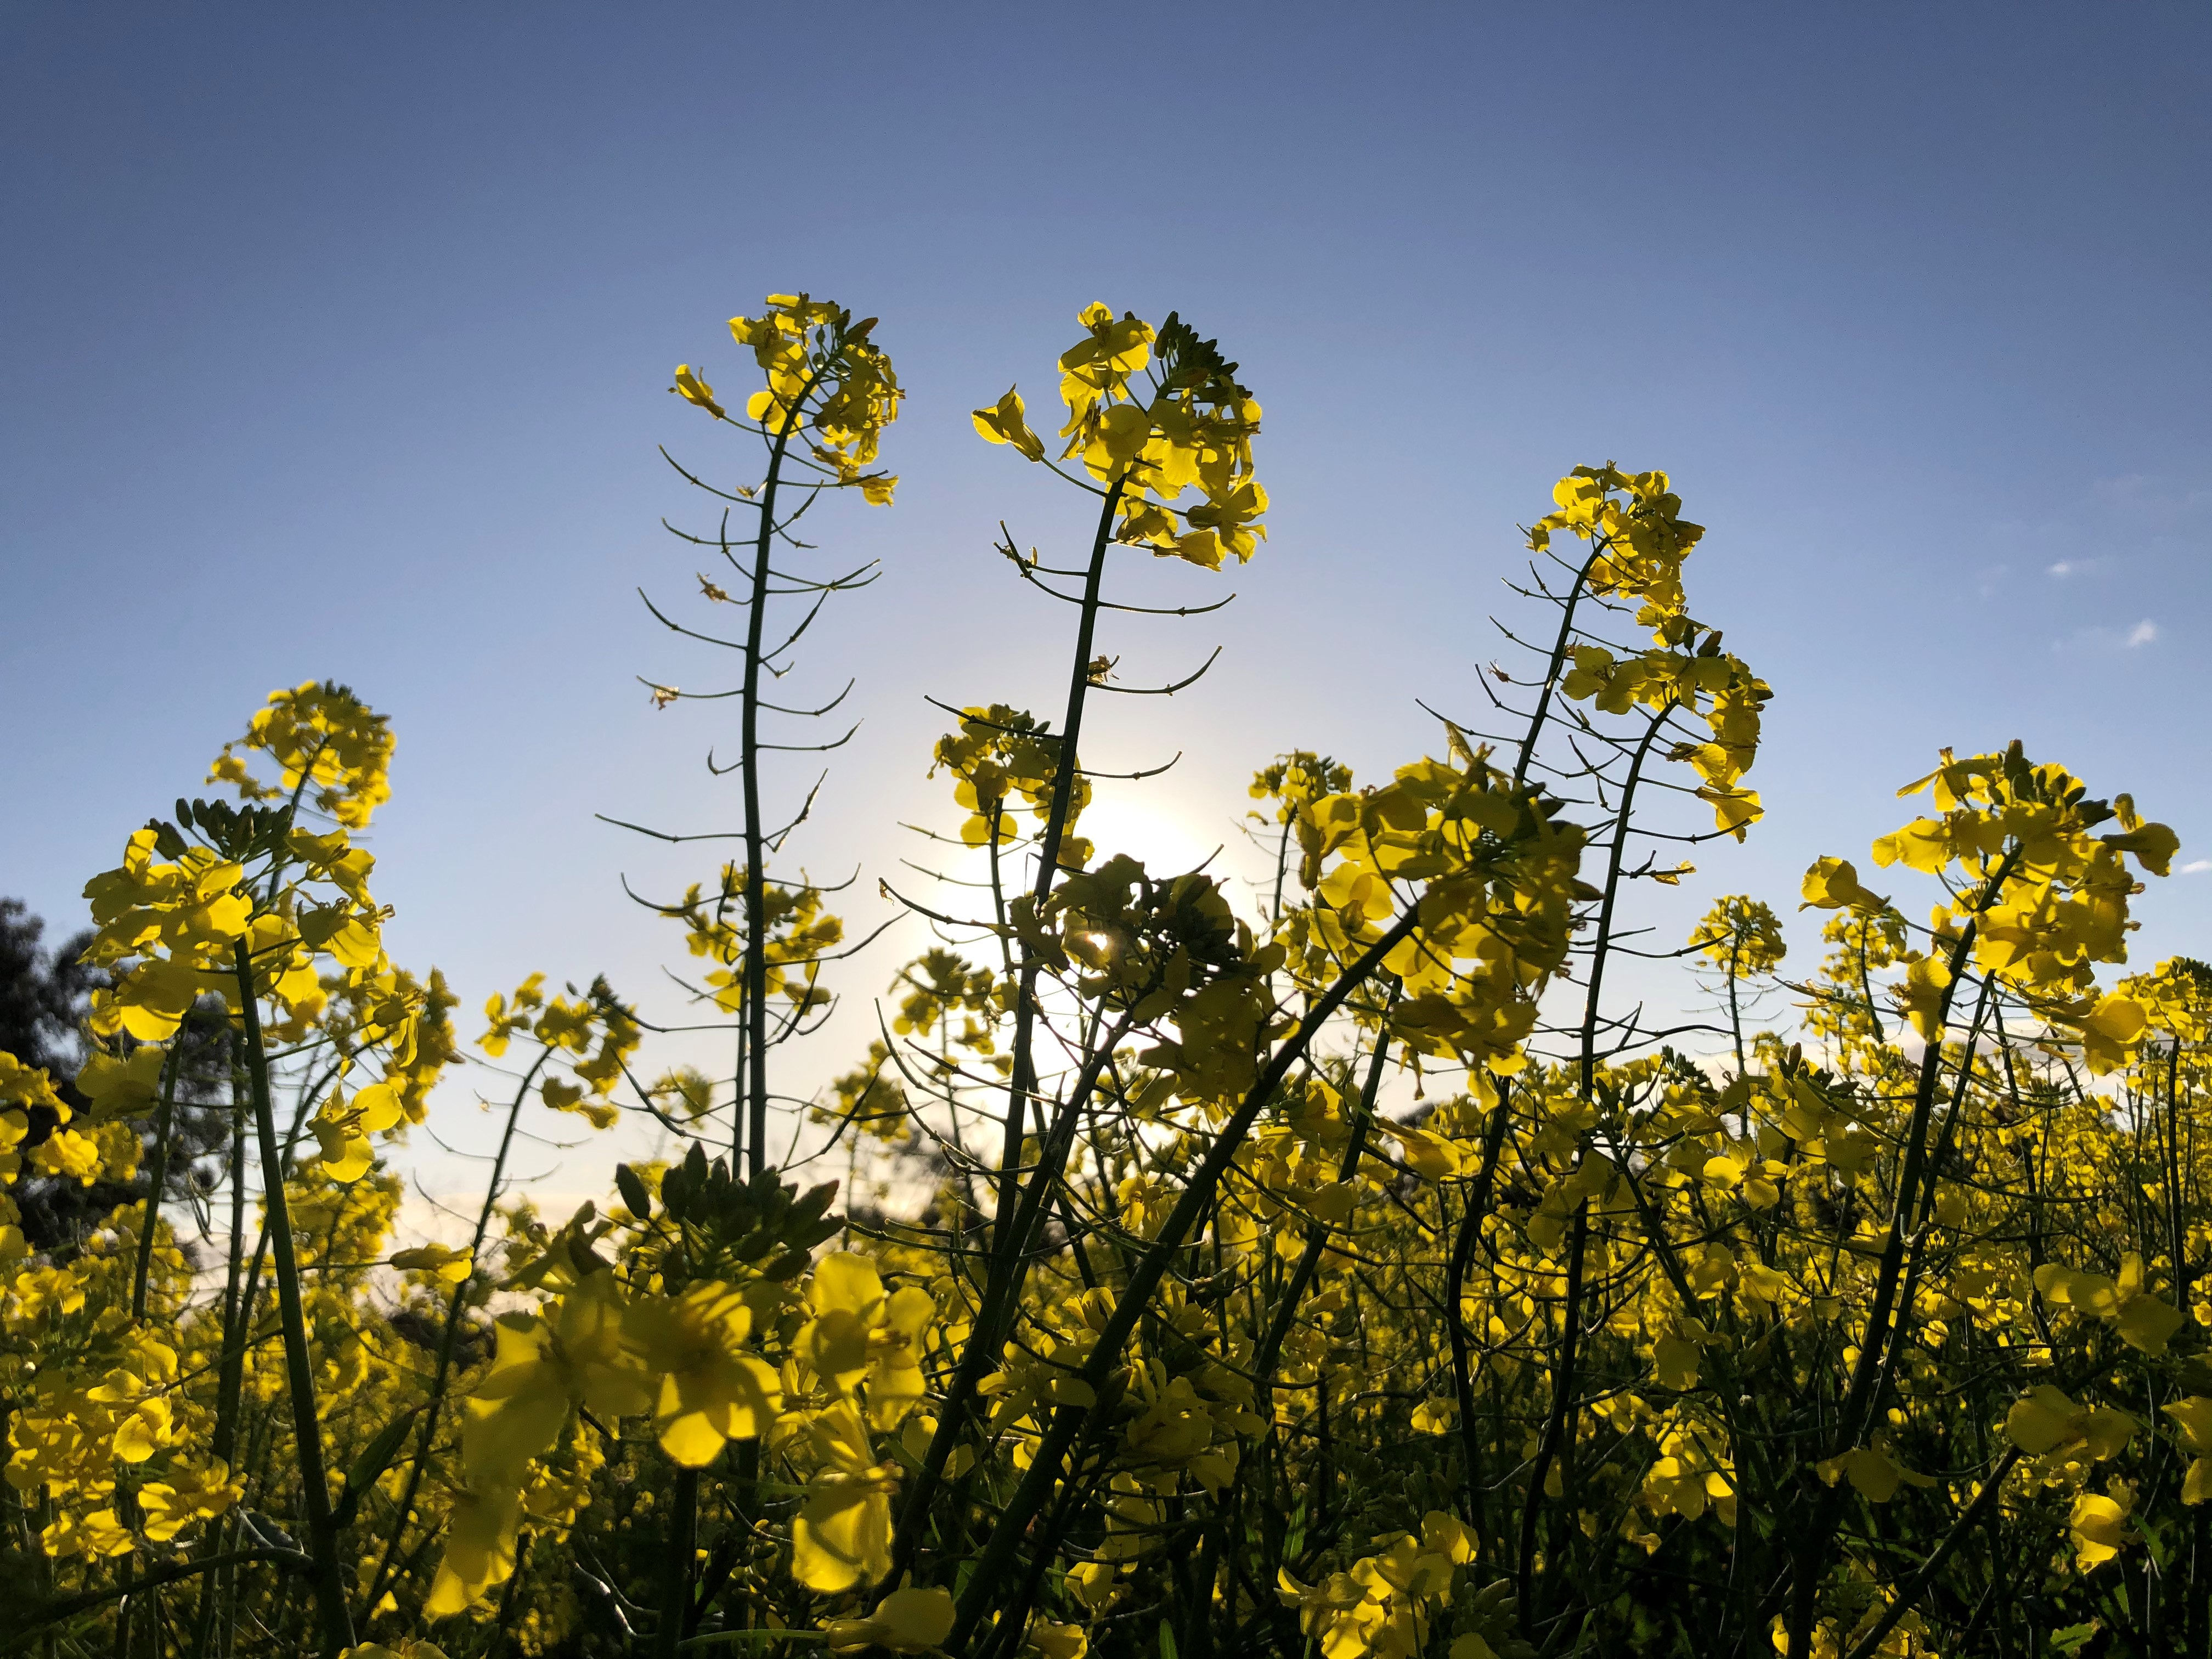 A ground-up shot showing the heads of canola plants backlit by bright sunshine